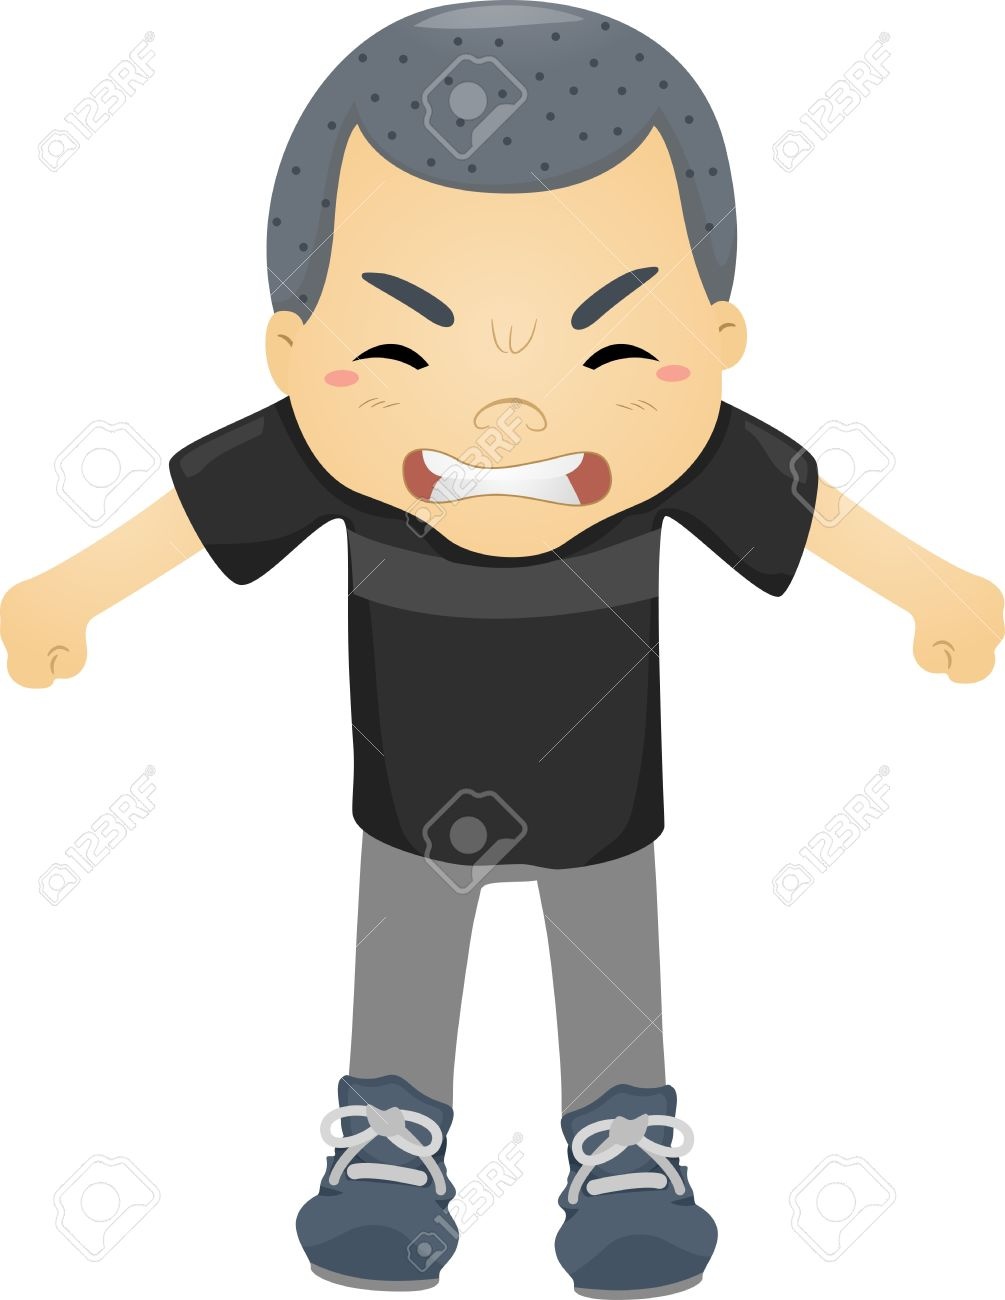 Anger clipart angry boy. Mad child collection illustration